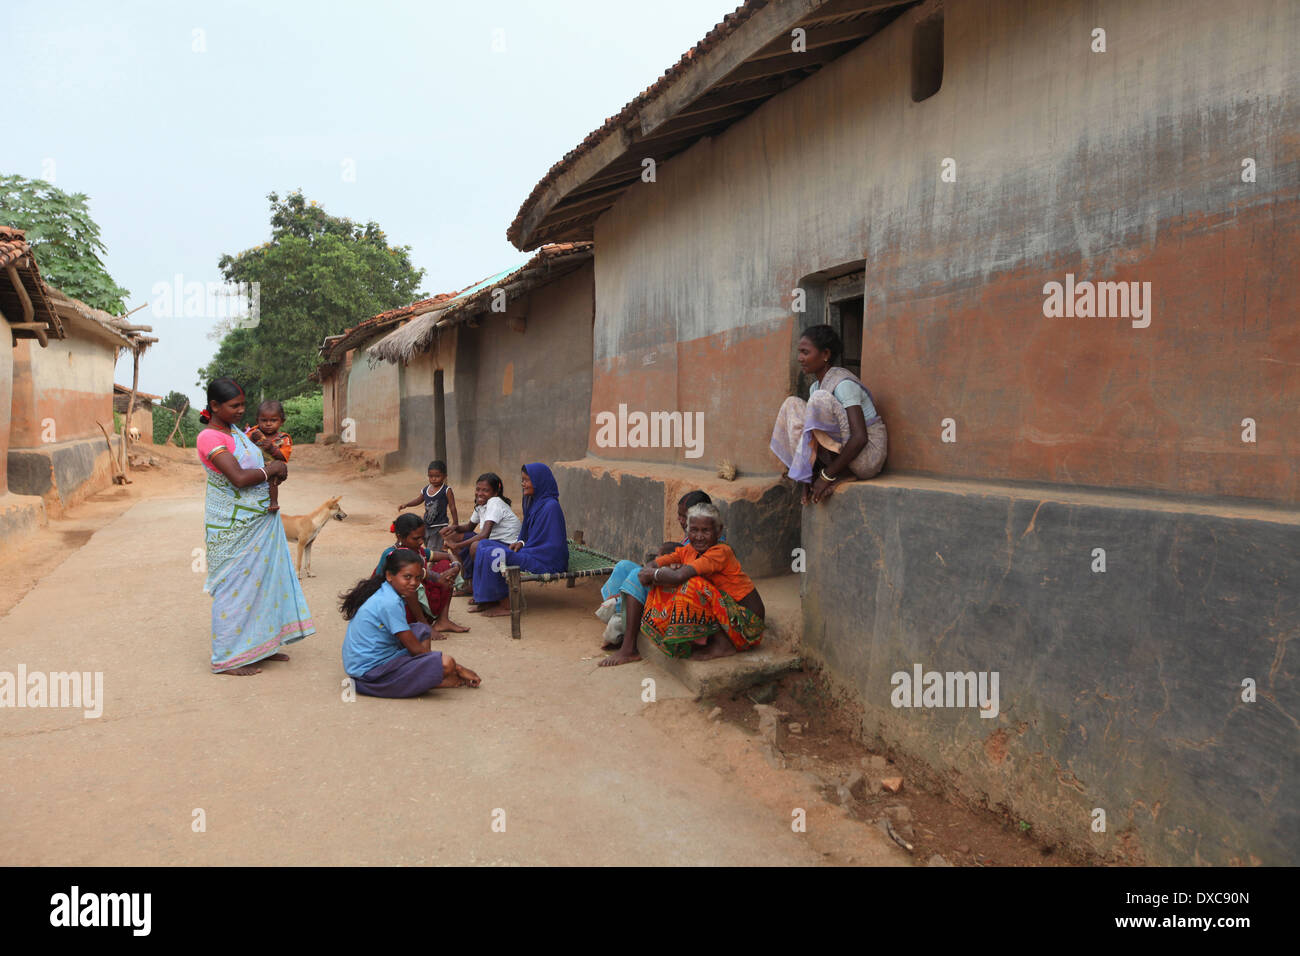 Group of tribal women in leisure time. Santhal tribe. Hardhekitand village, Dist Bokaro, Jharkhand, India - Stock Image